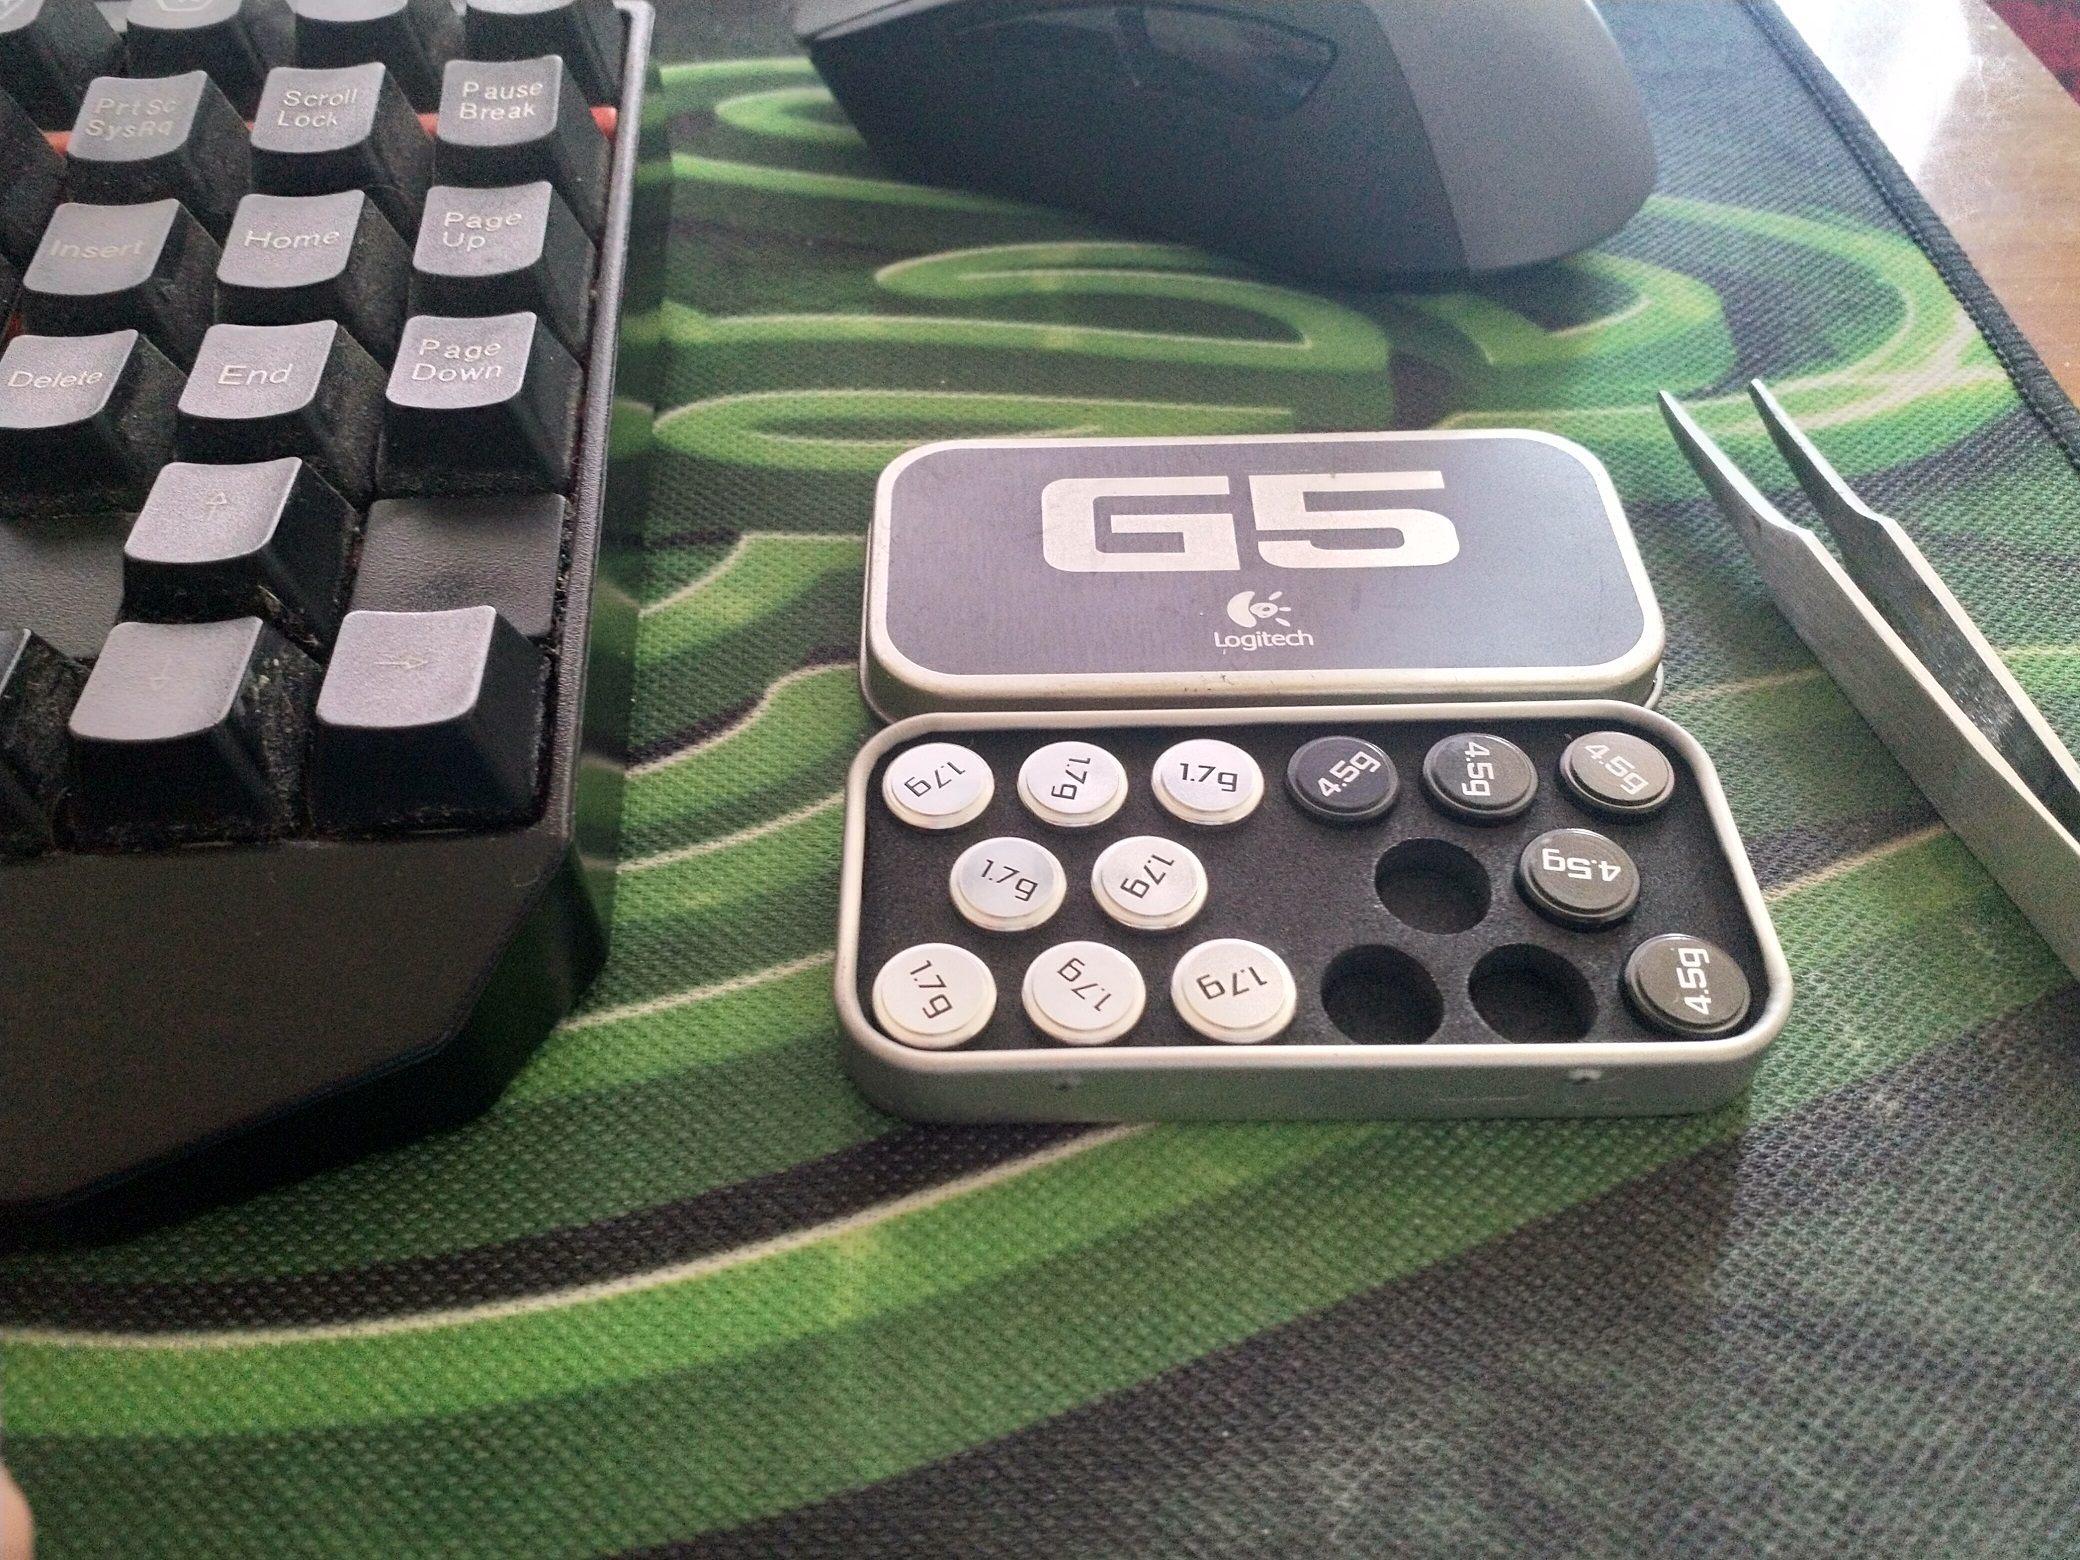 Glorious Model O Mouse | TechPowerUp Forums